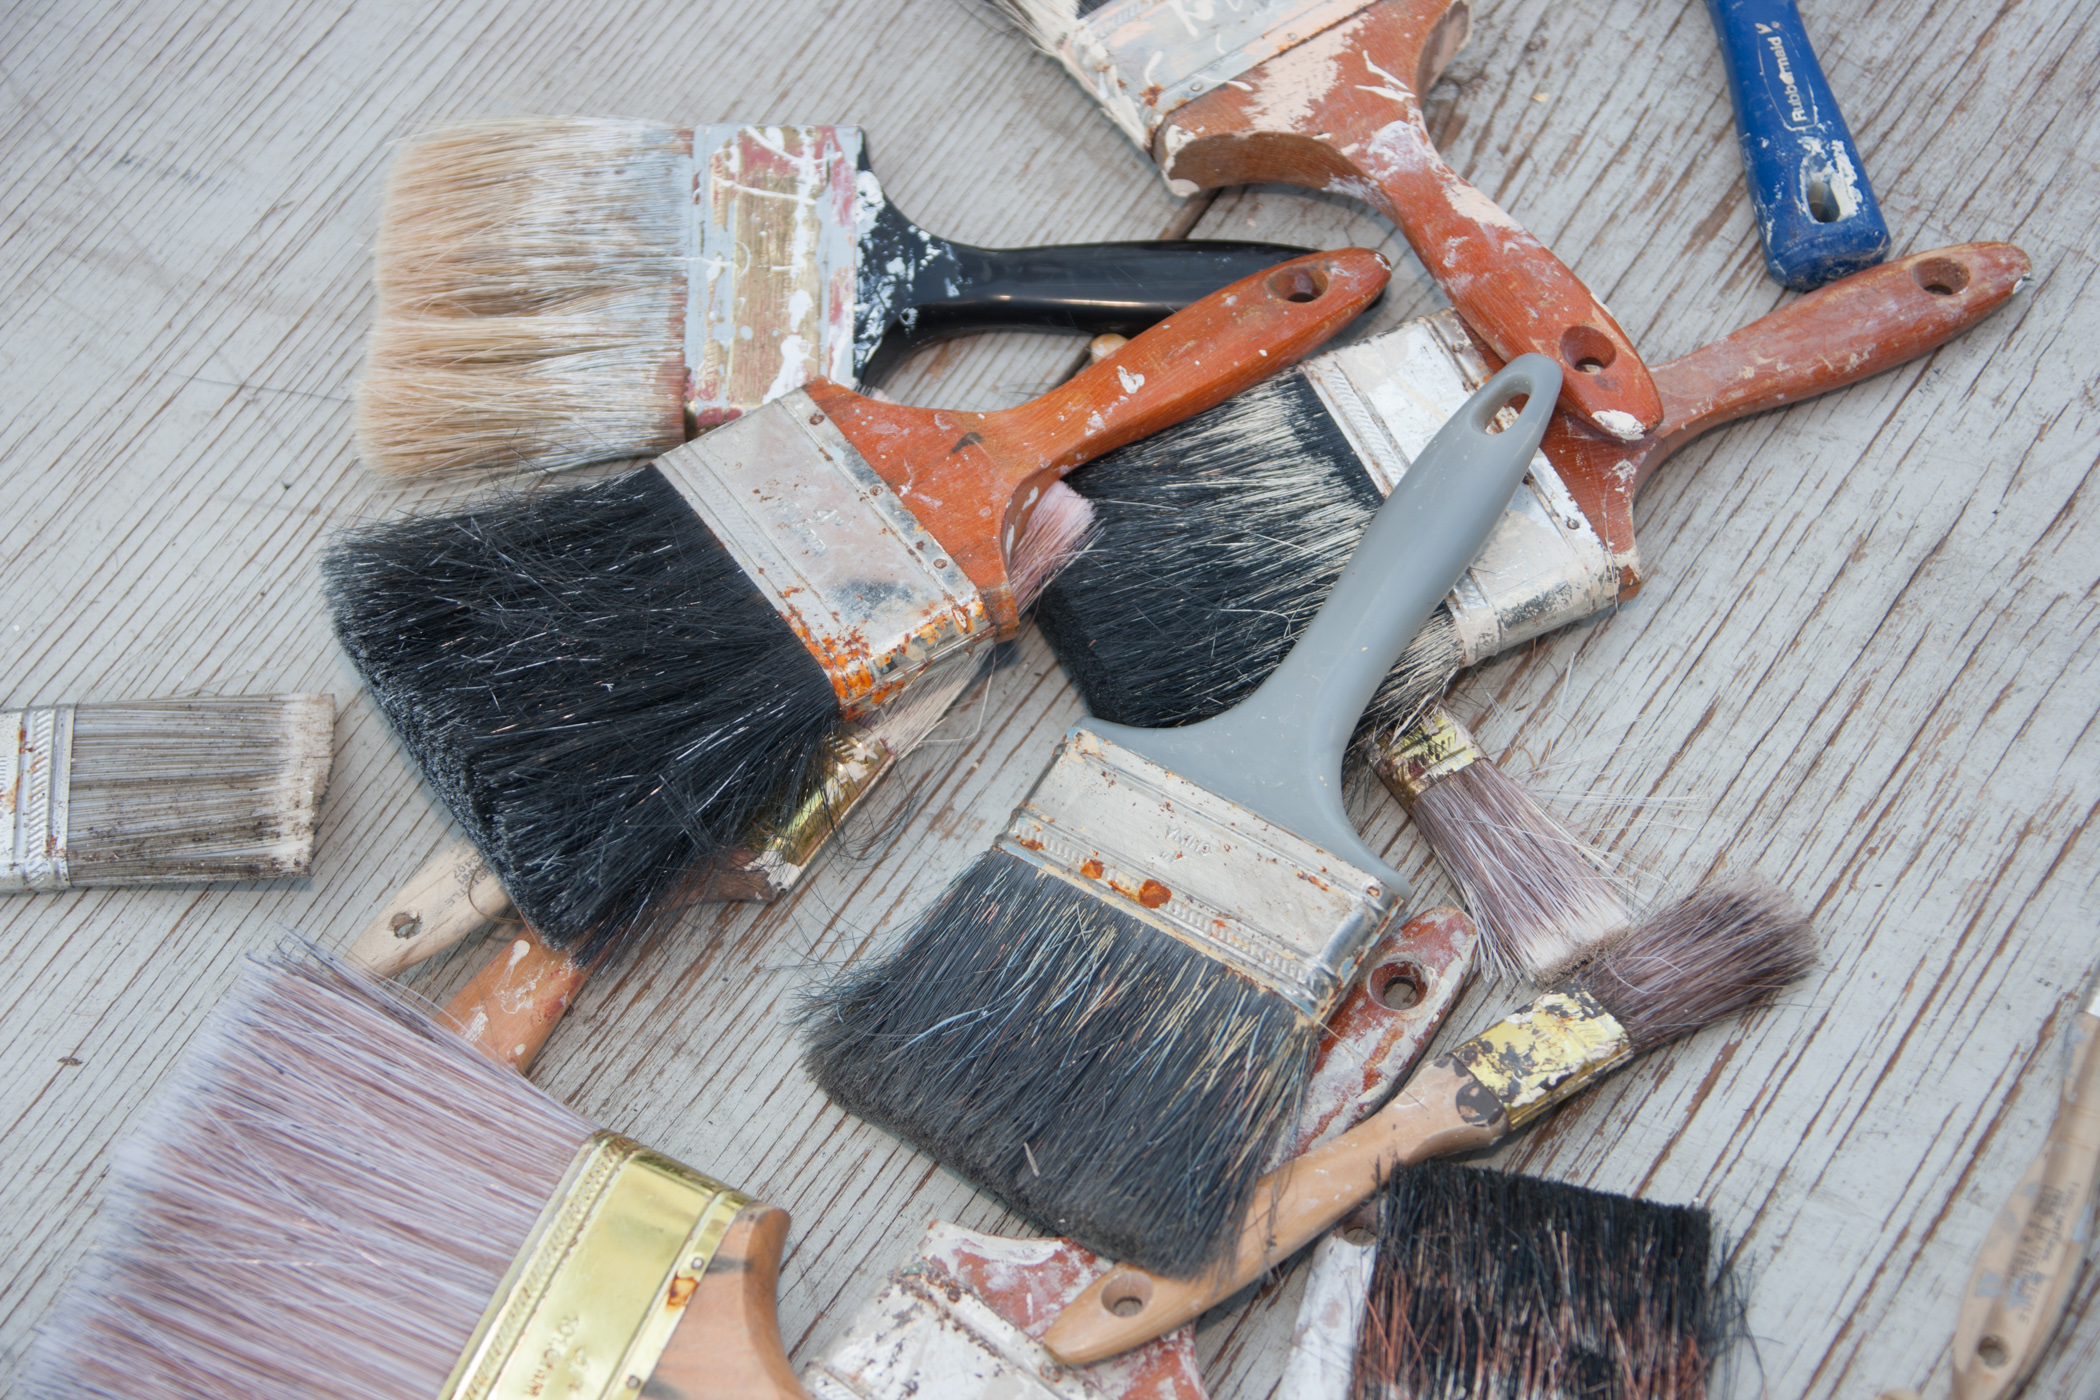 Various paintbrushes in a pile on wood background